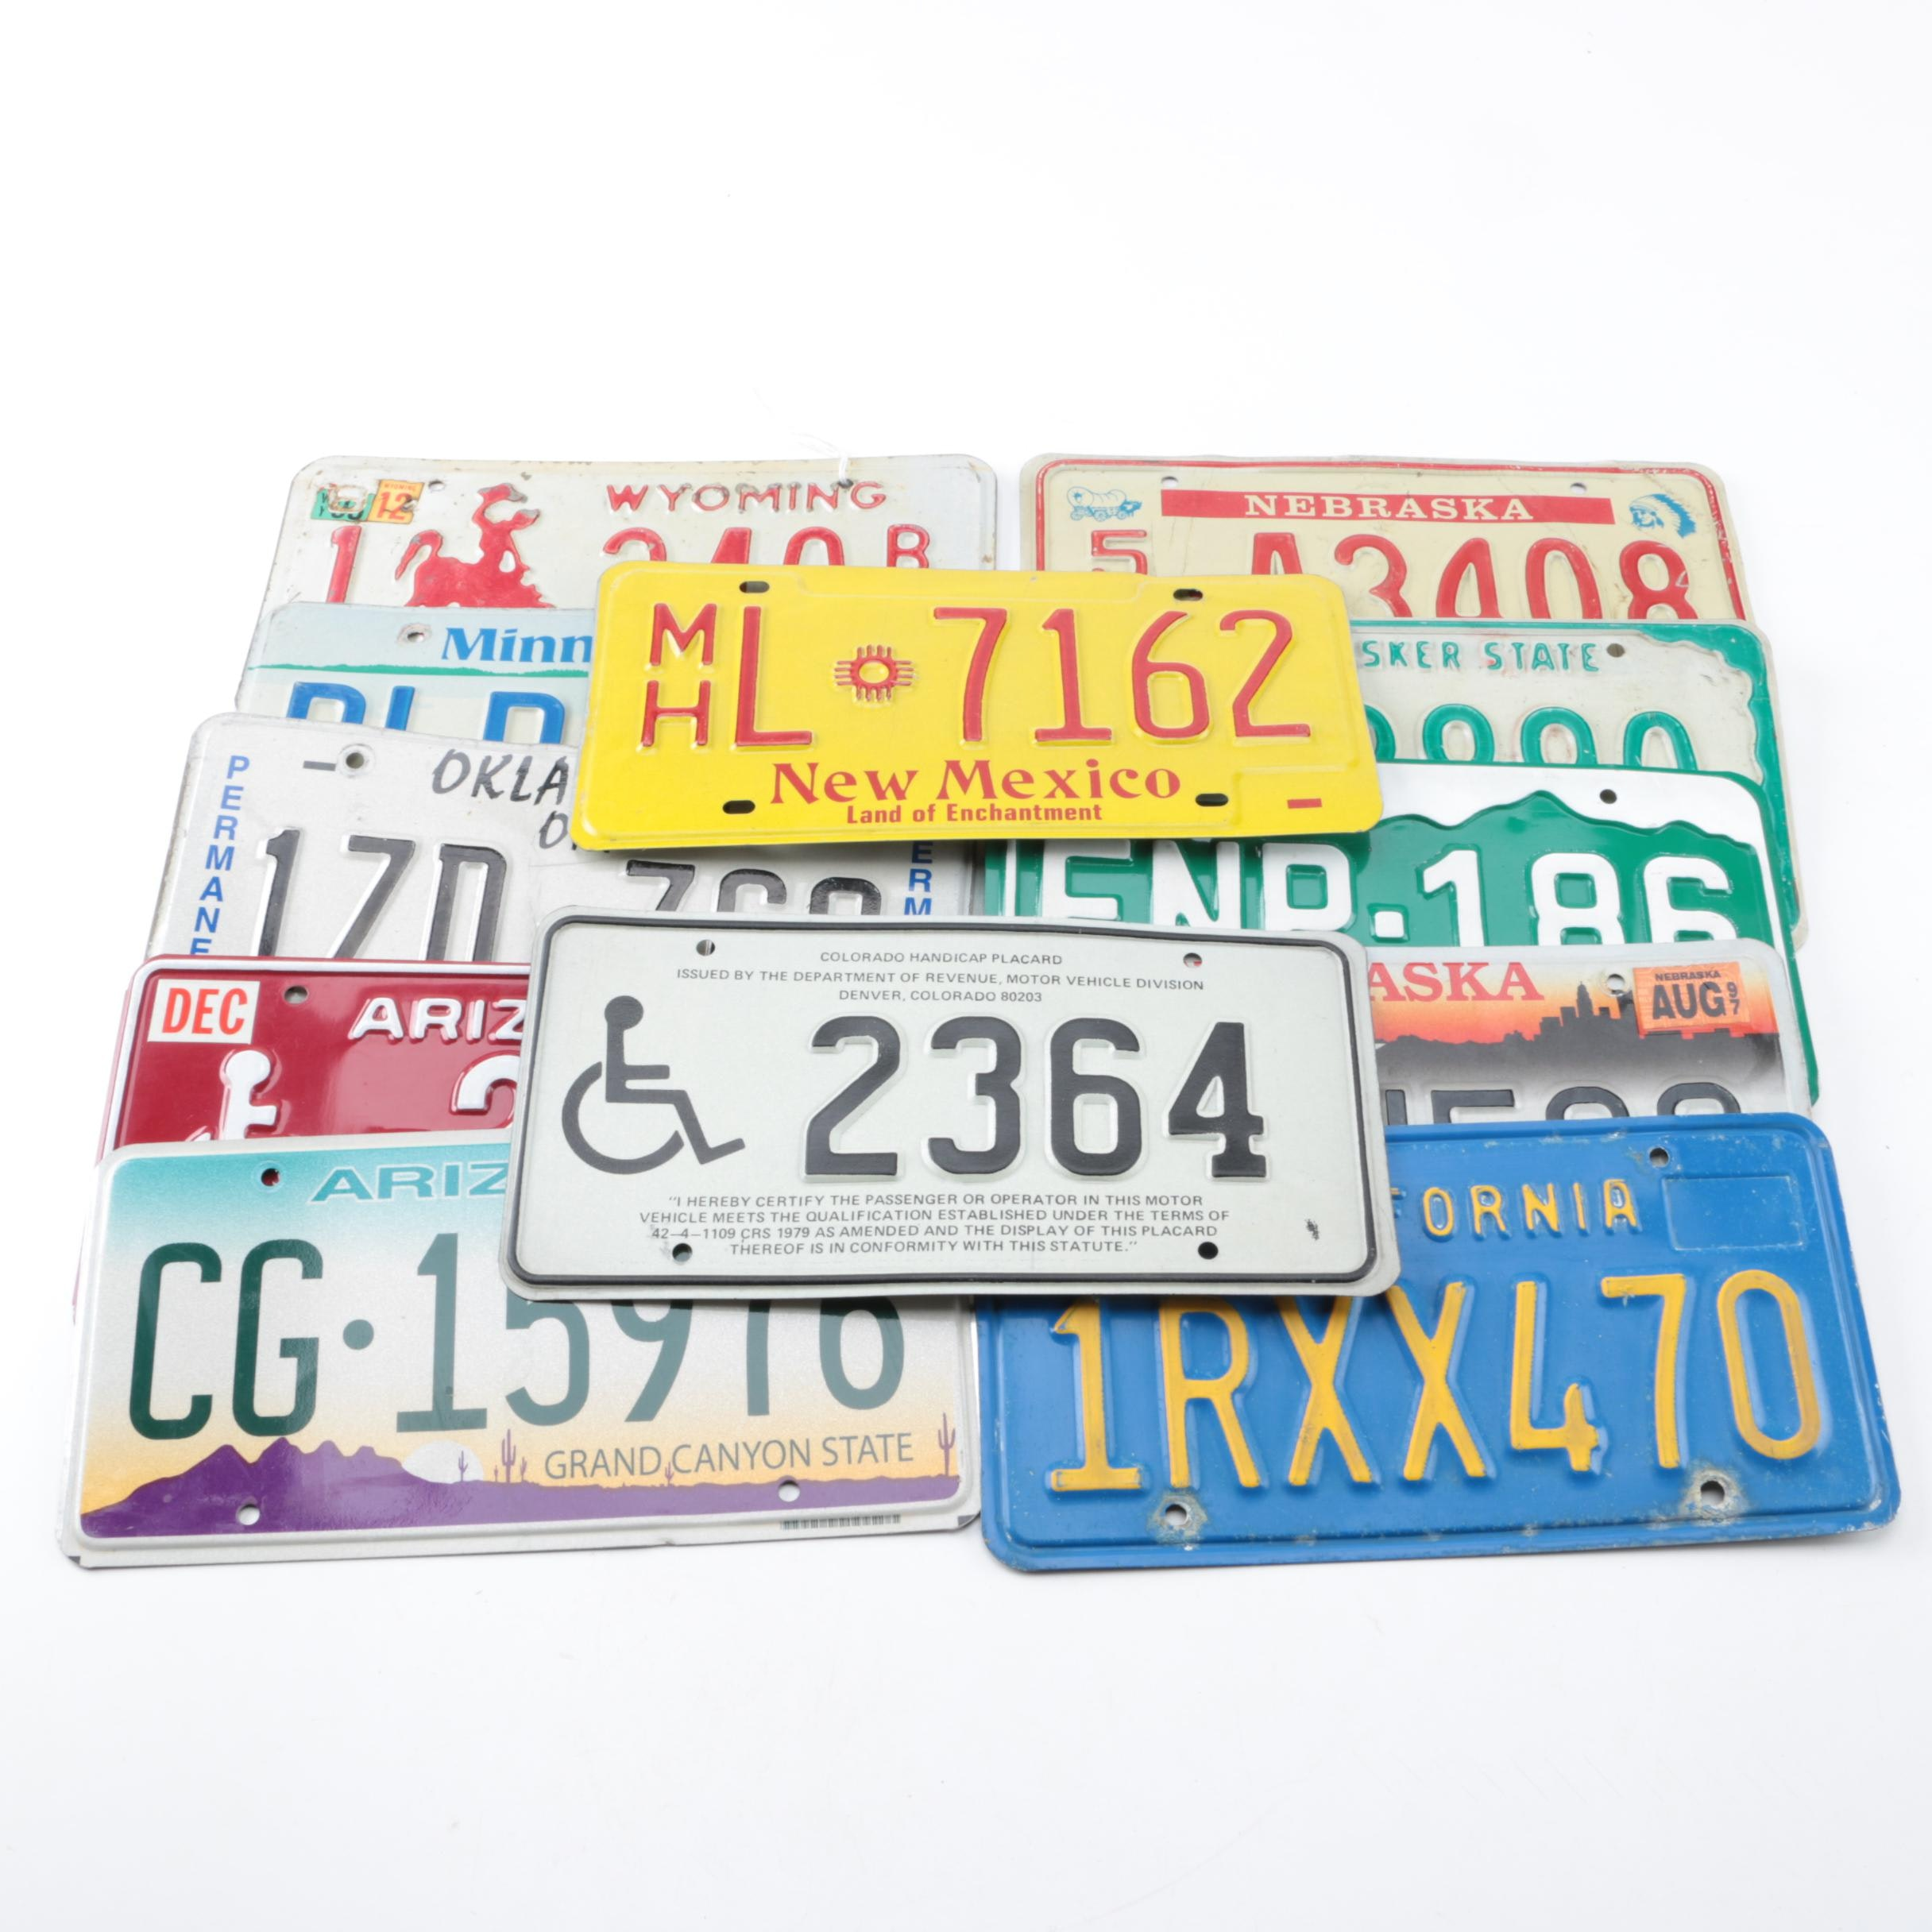 American Automobile License Plates